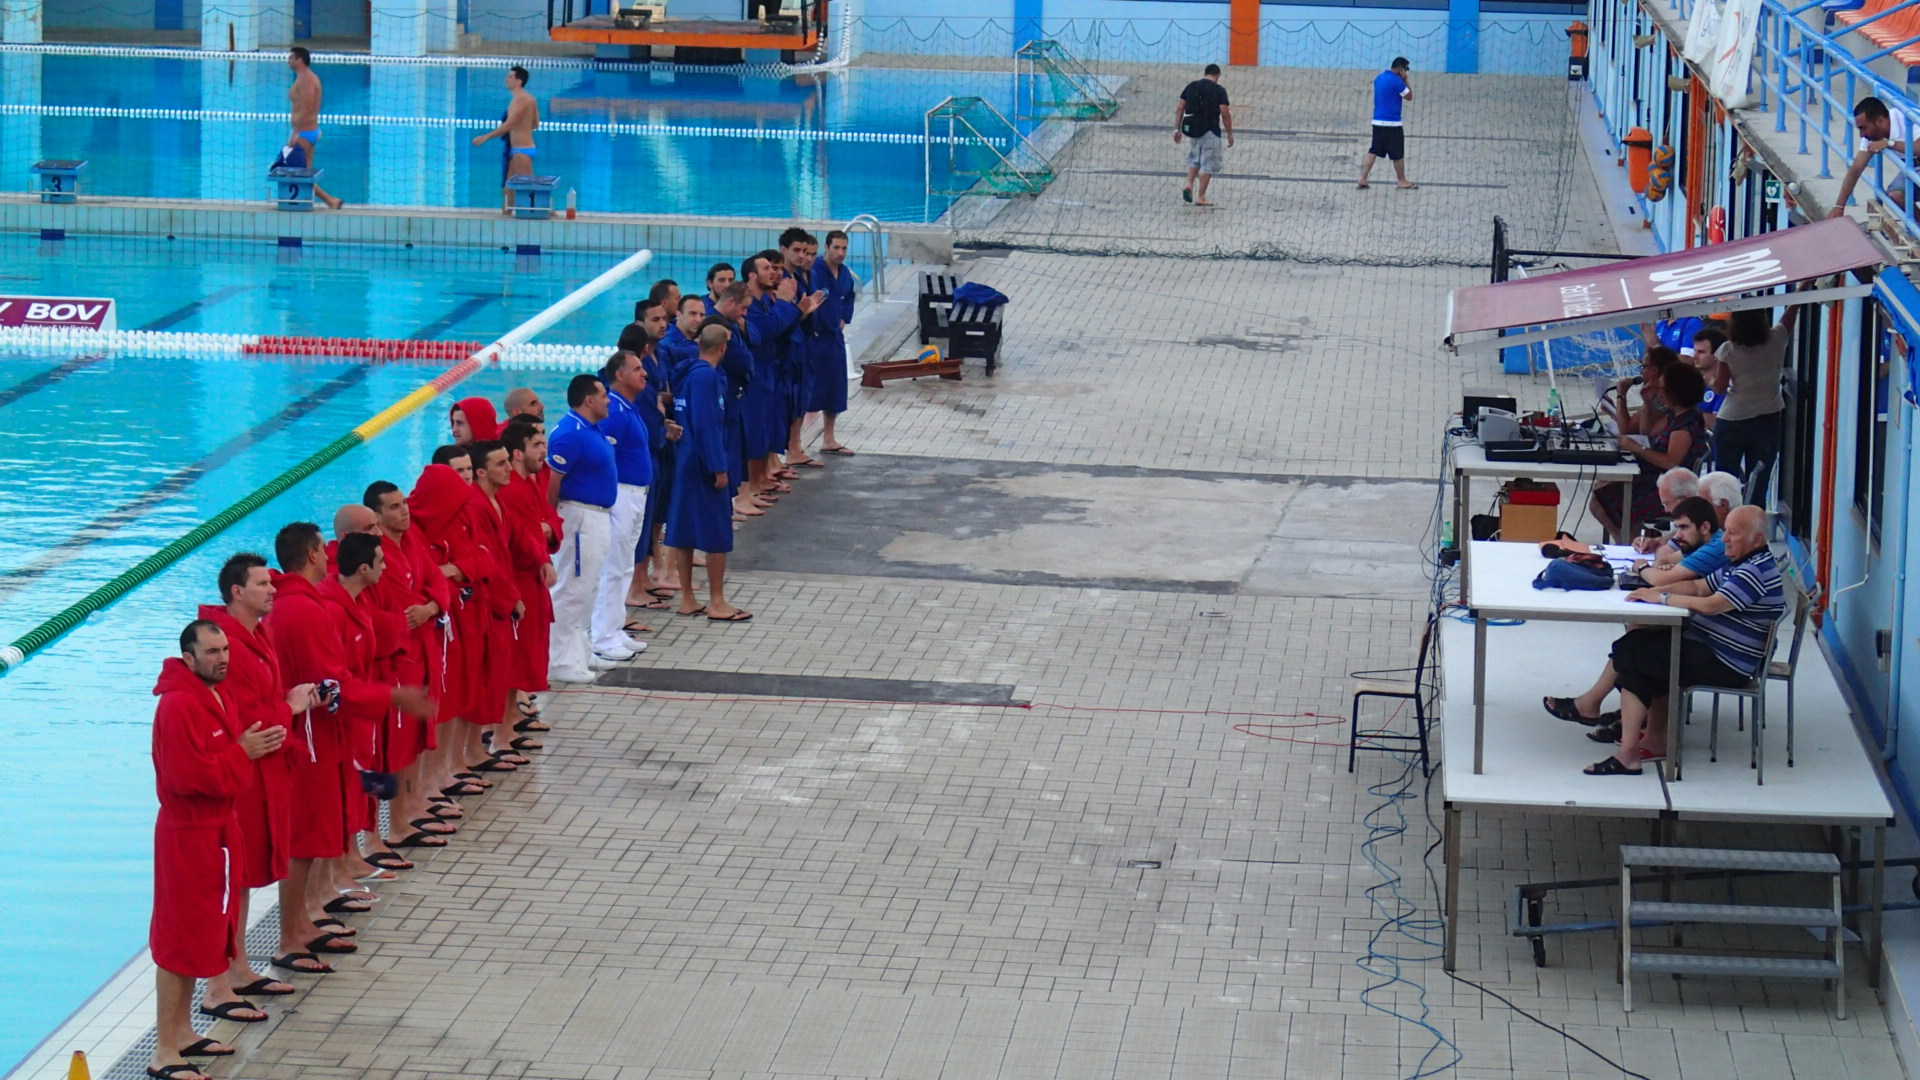 waterpolo2014a (2).JPG